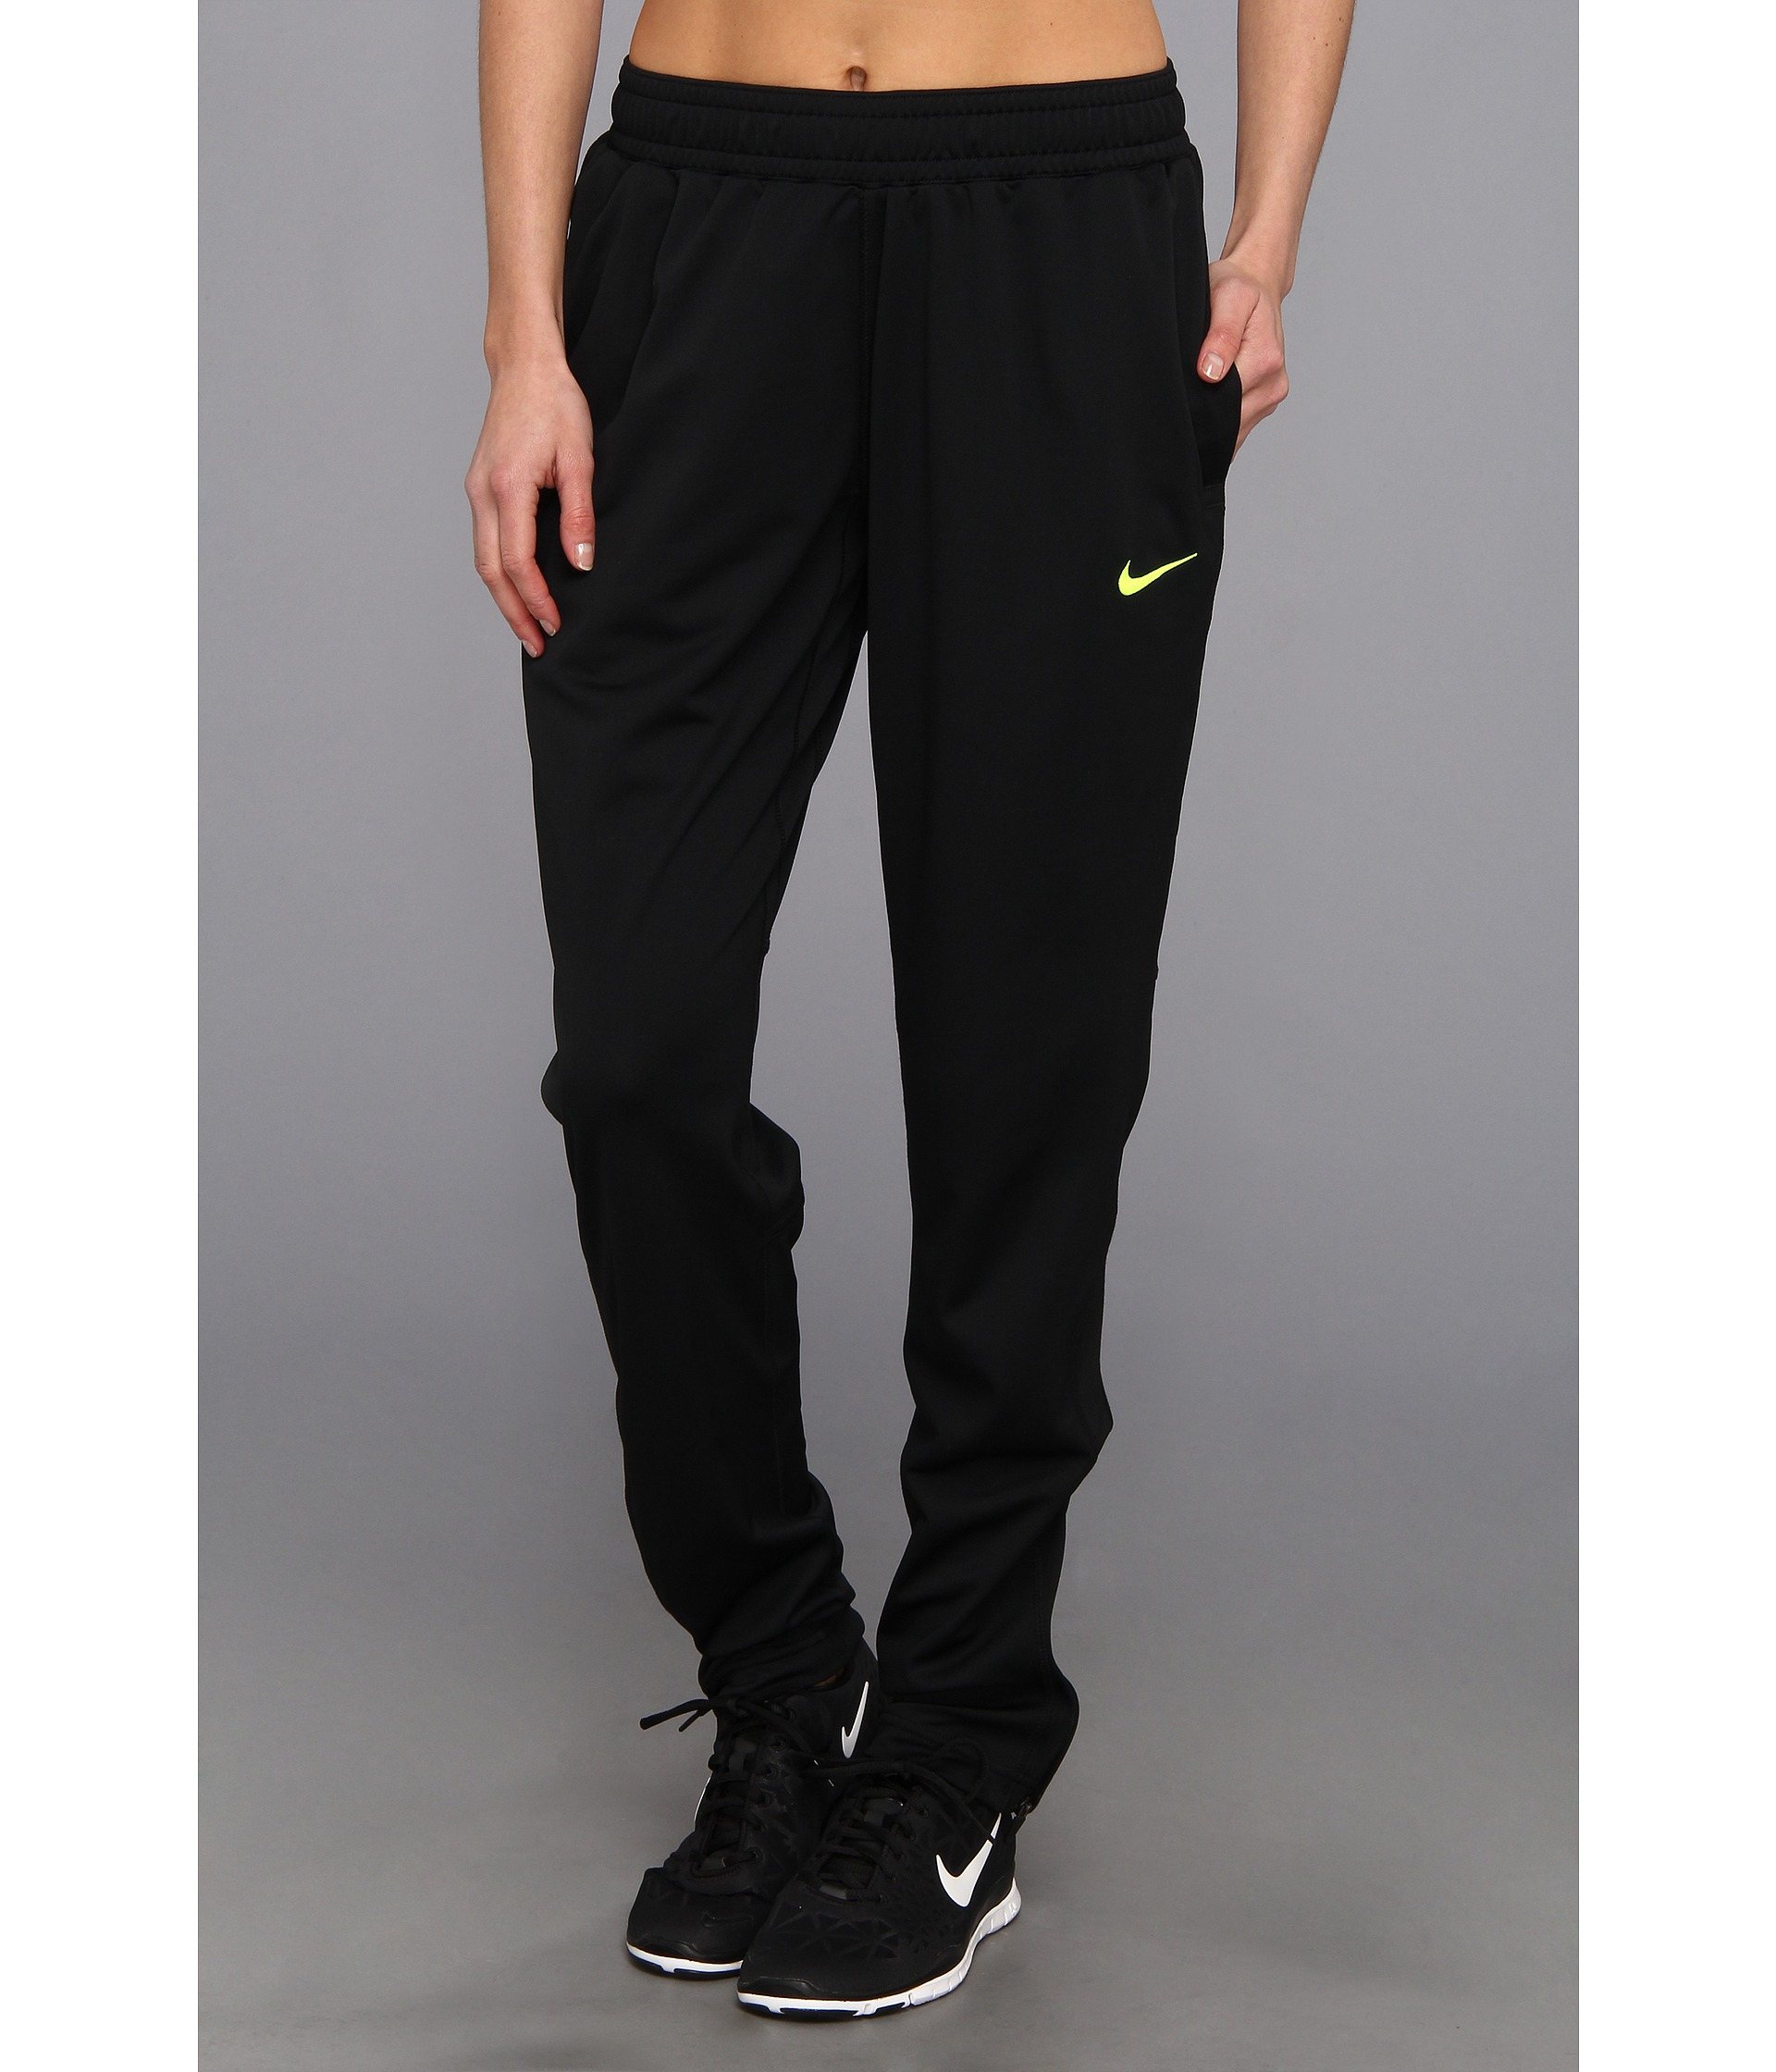 Creative Oh, And Theres A Handy Interior Pocket At The Waist Buy It $85, Nikecom Mesh